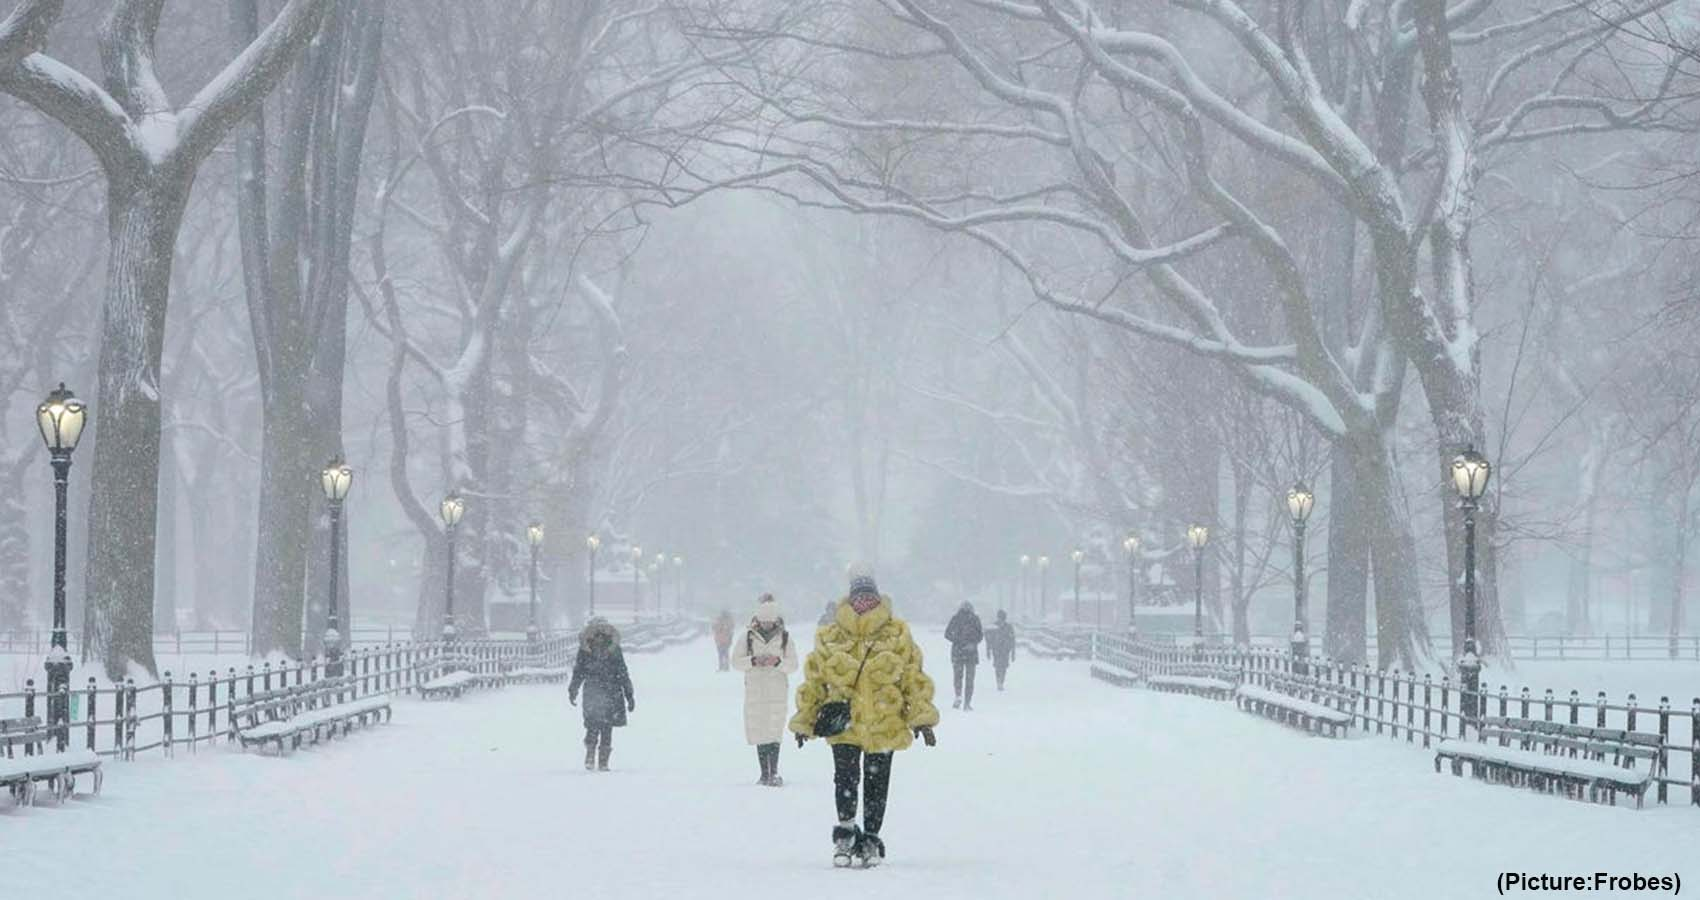 Arctic Warming Can Cause Severe Winter Weather